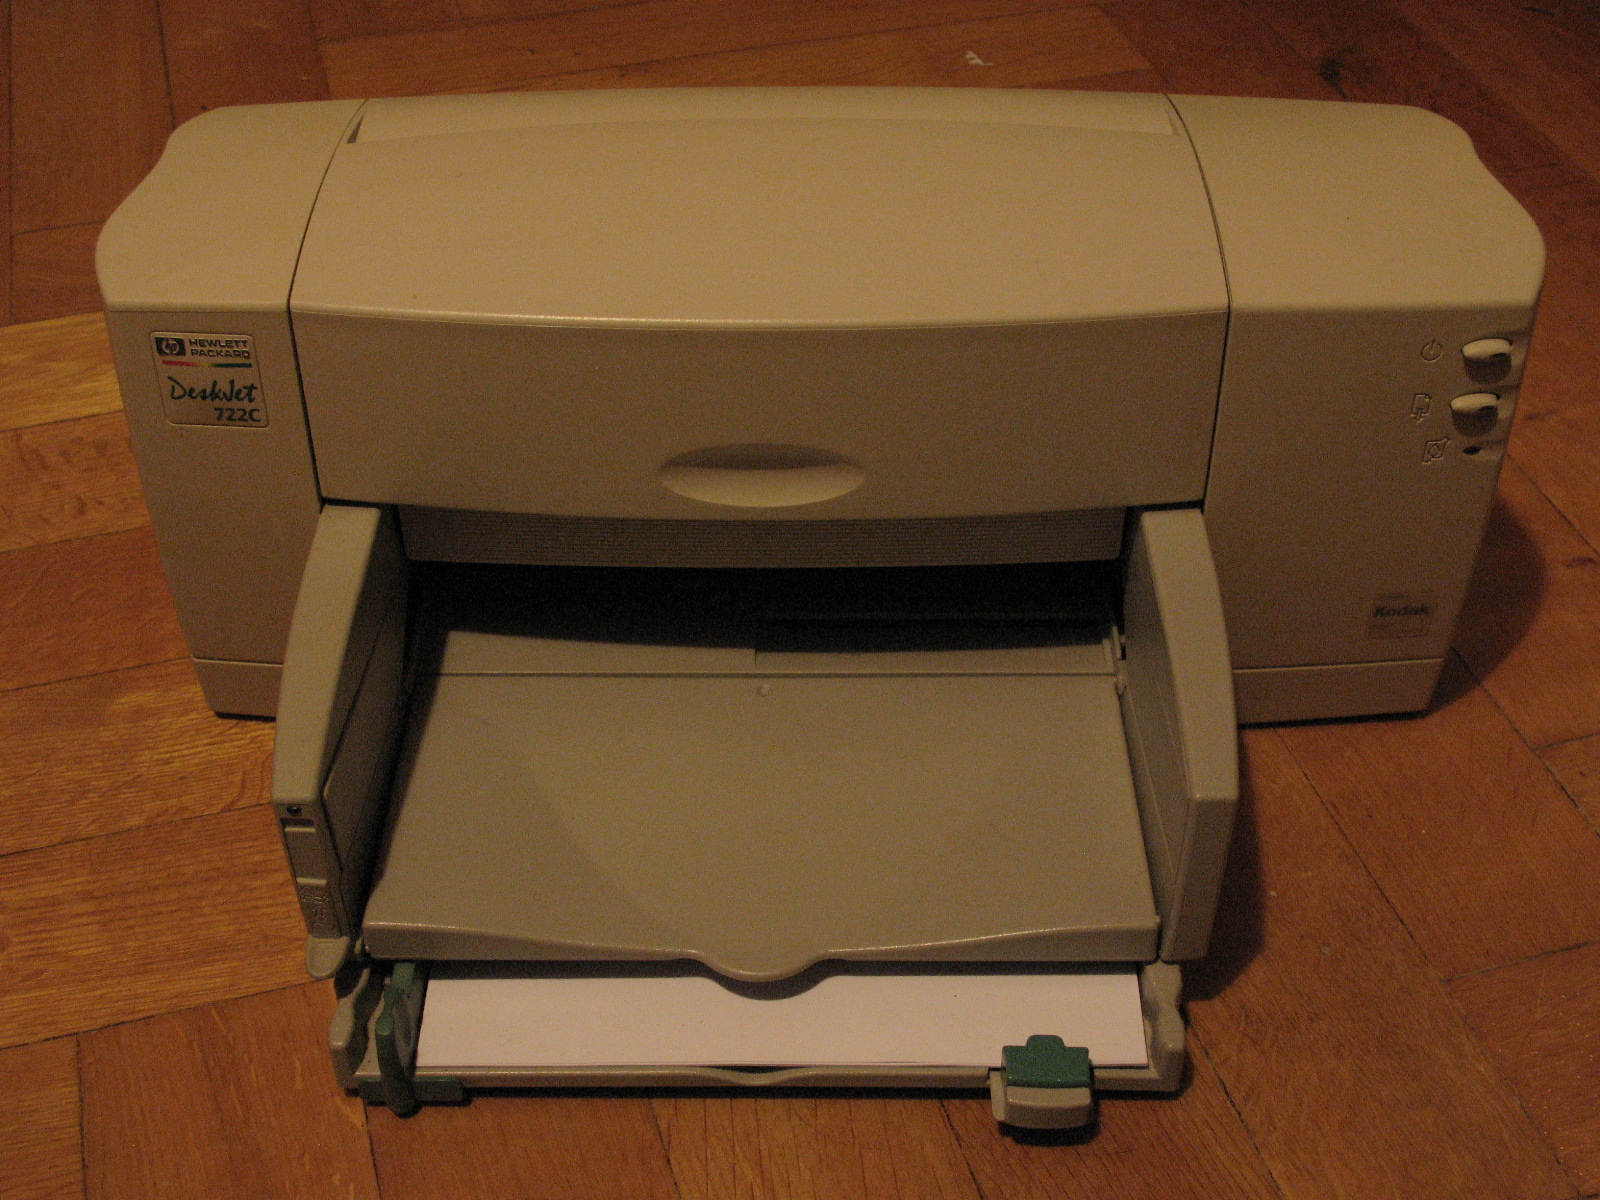 HEWLETT PACKARD 722C PRINTER DRIVERS PC